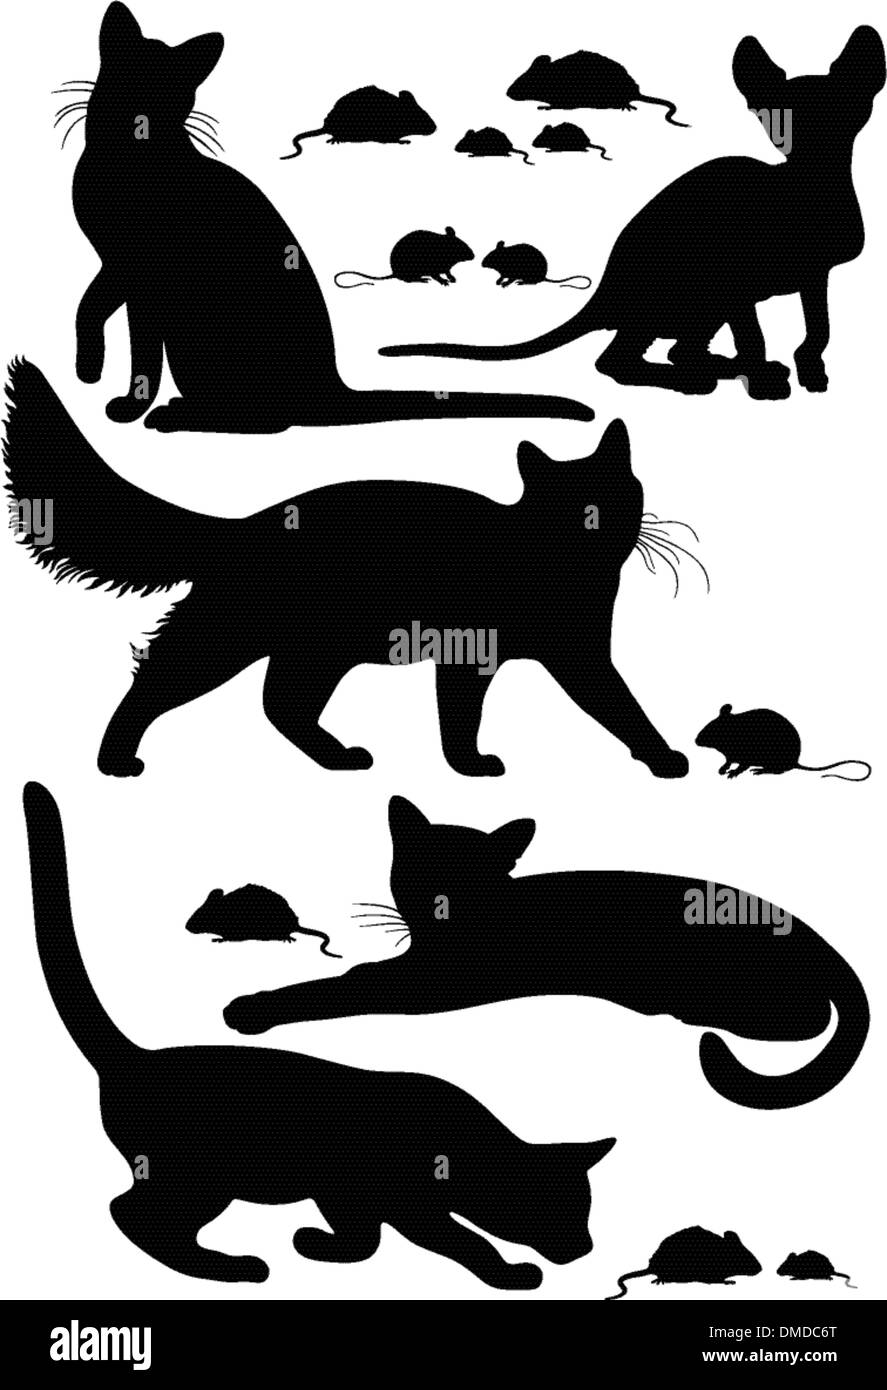 cats silhouettes - Stock Image